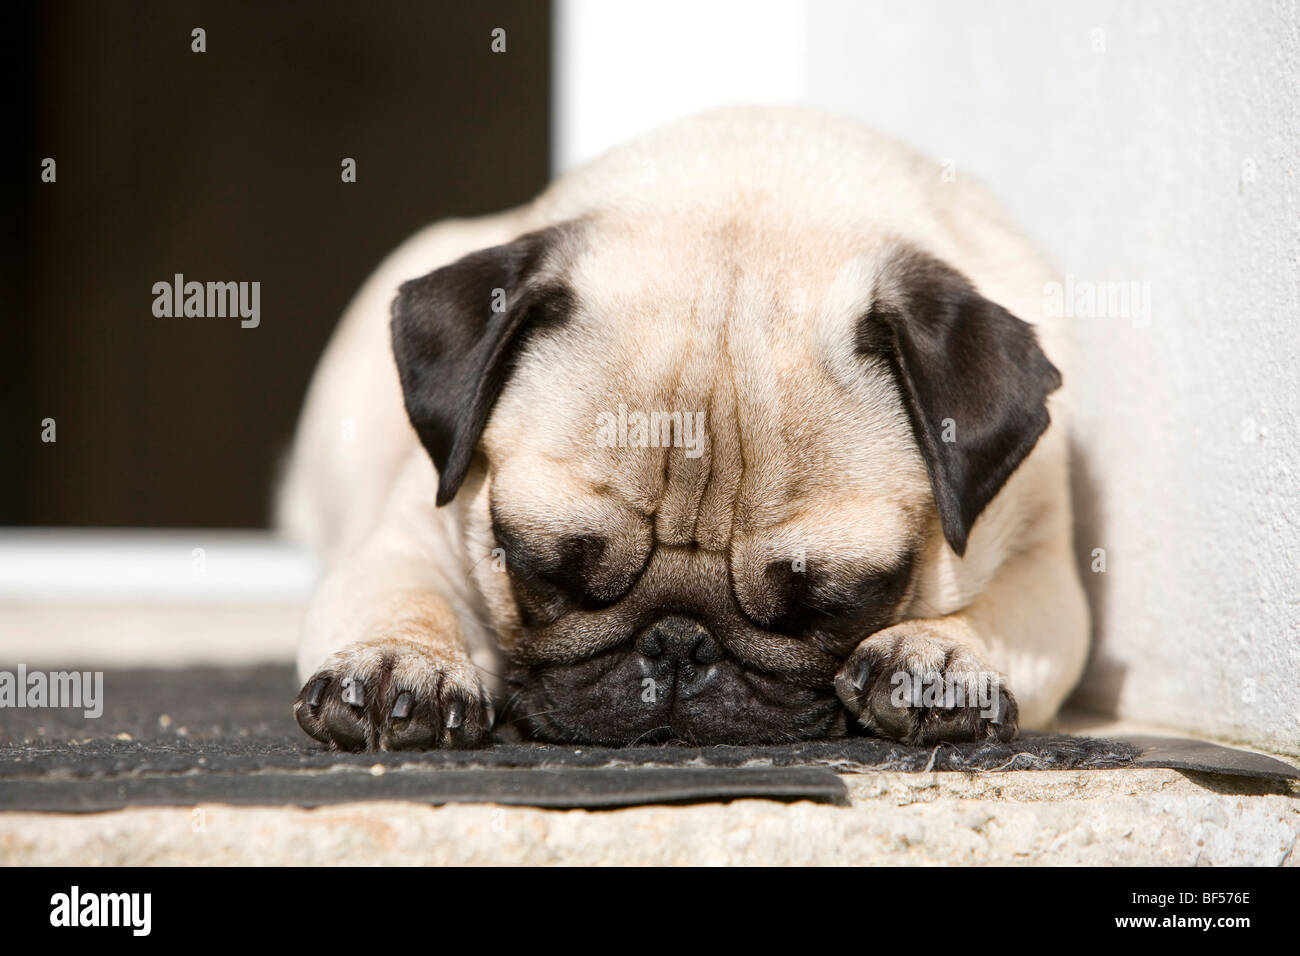 A pug is lying in a doorway in the sun, taking a nap - Stock Image